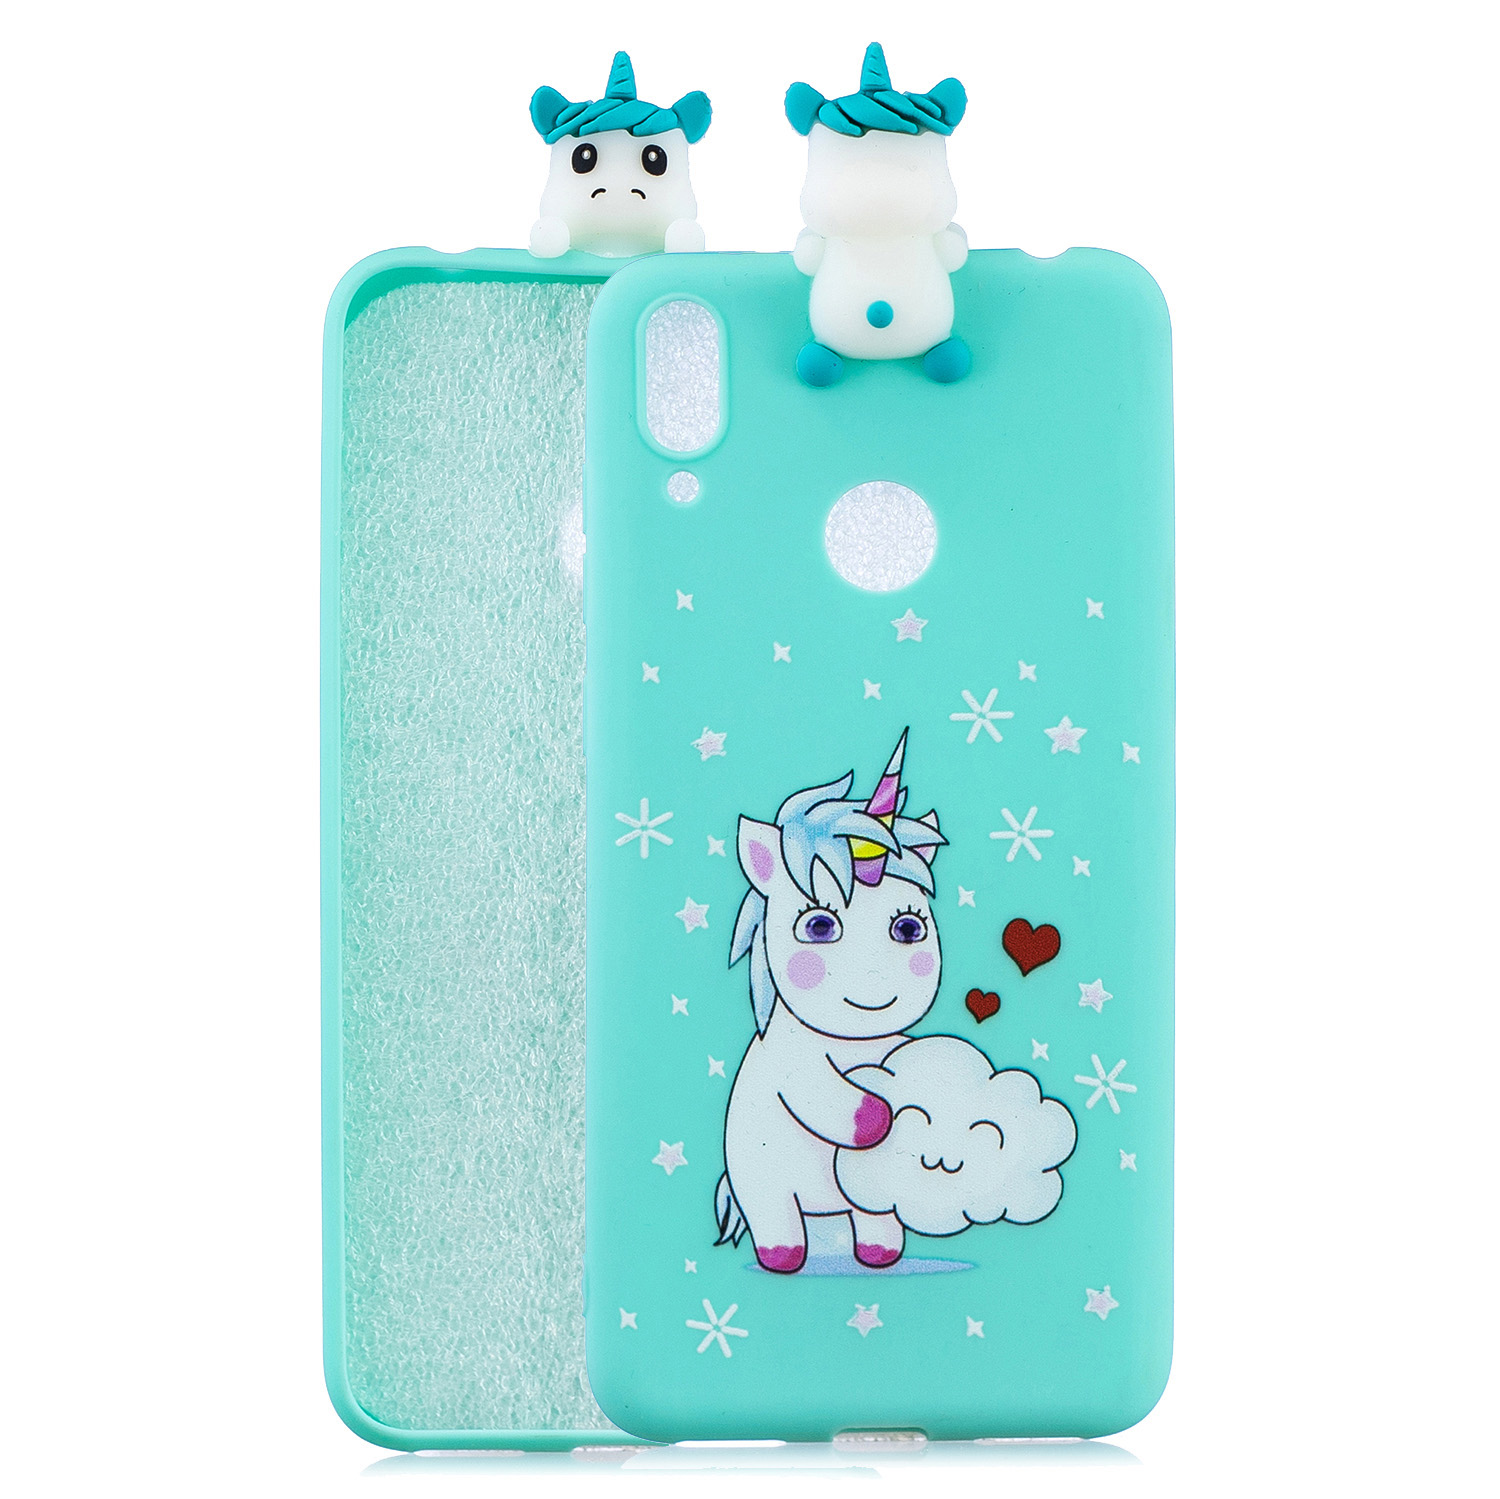 For Huawei Y7 2019 3D Cartoon Lovely Coloured Painted Soft TPU Back Cover Non-slip Shockproof Full Protective Case Love unicorn